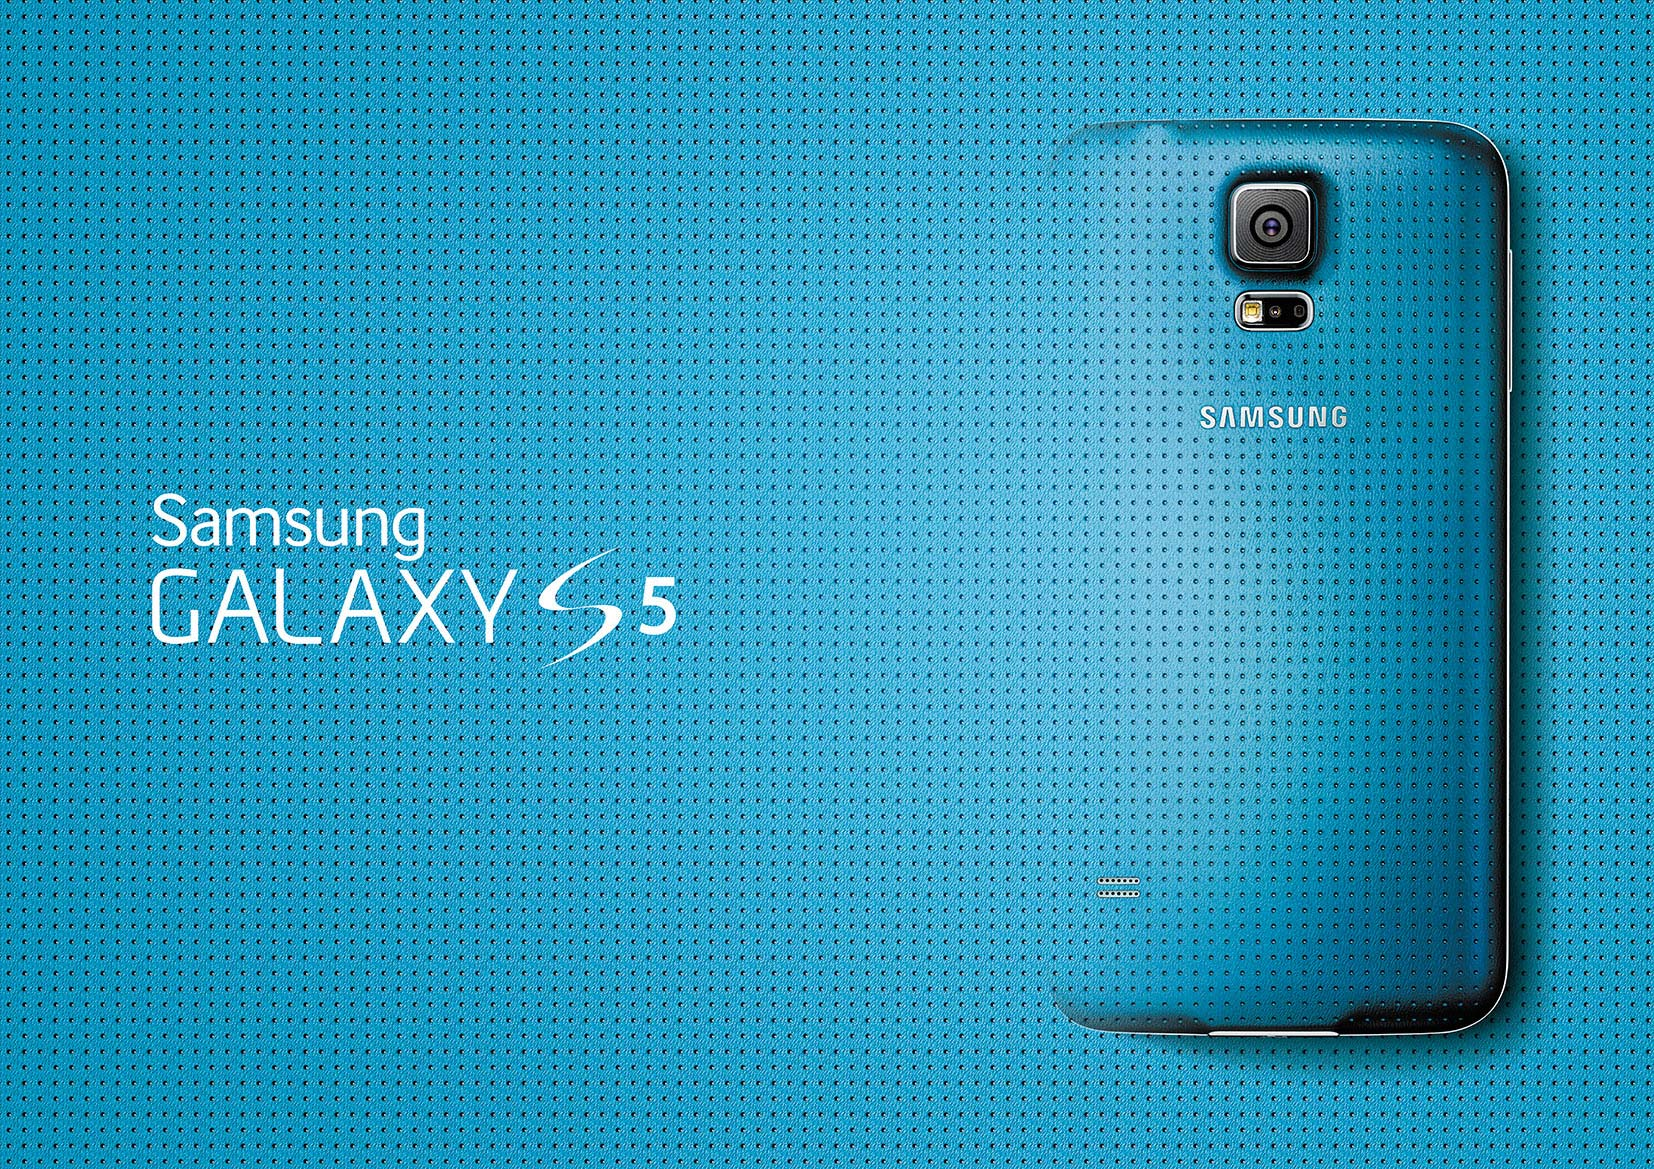 Samsung Unveils The Galaxy S5 - The New King Of Android Phones 1